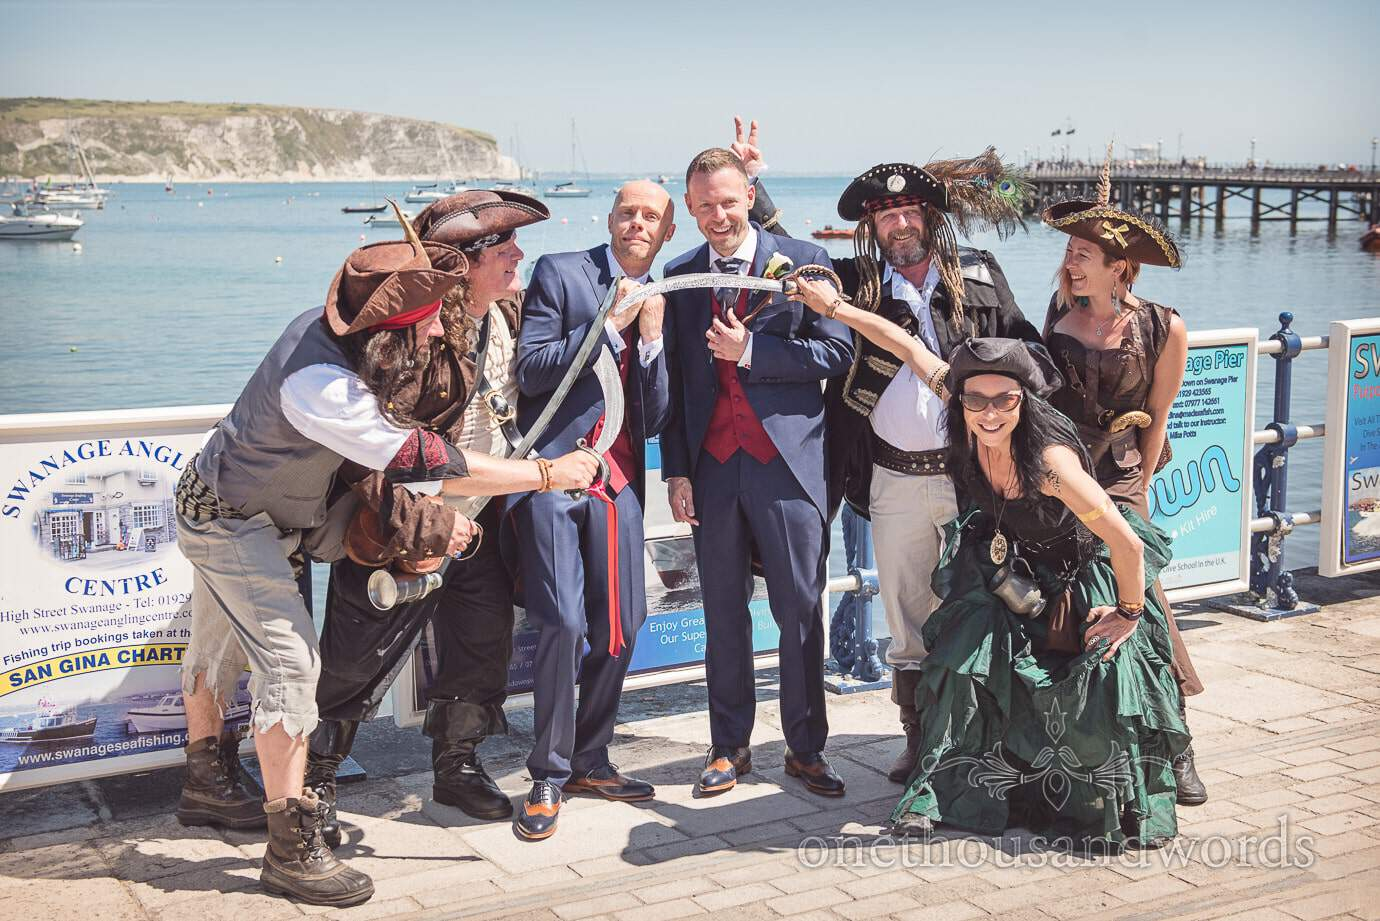 Gay wedding couple with Swanage pirates on sea front with Swanage Pier